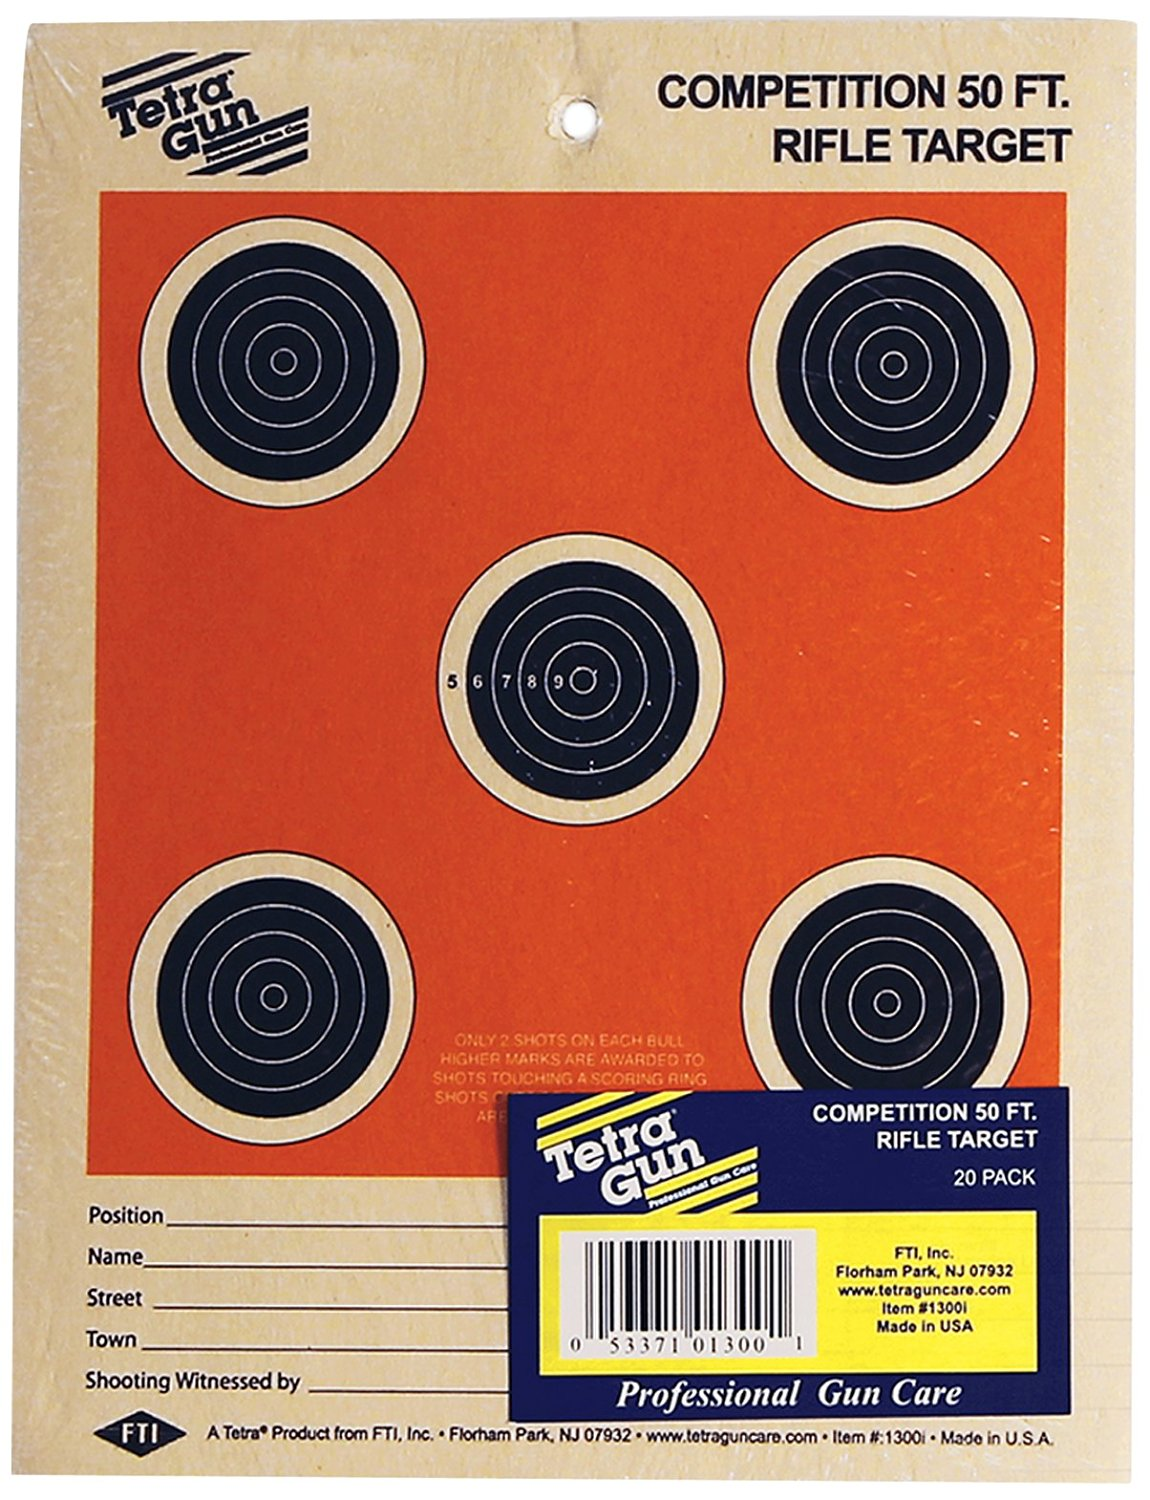 Tetra Gun Competition Rifle Targets, 50-Feet